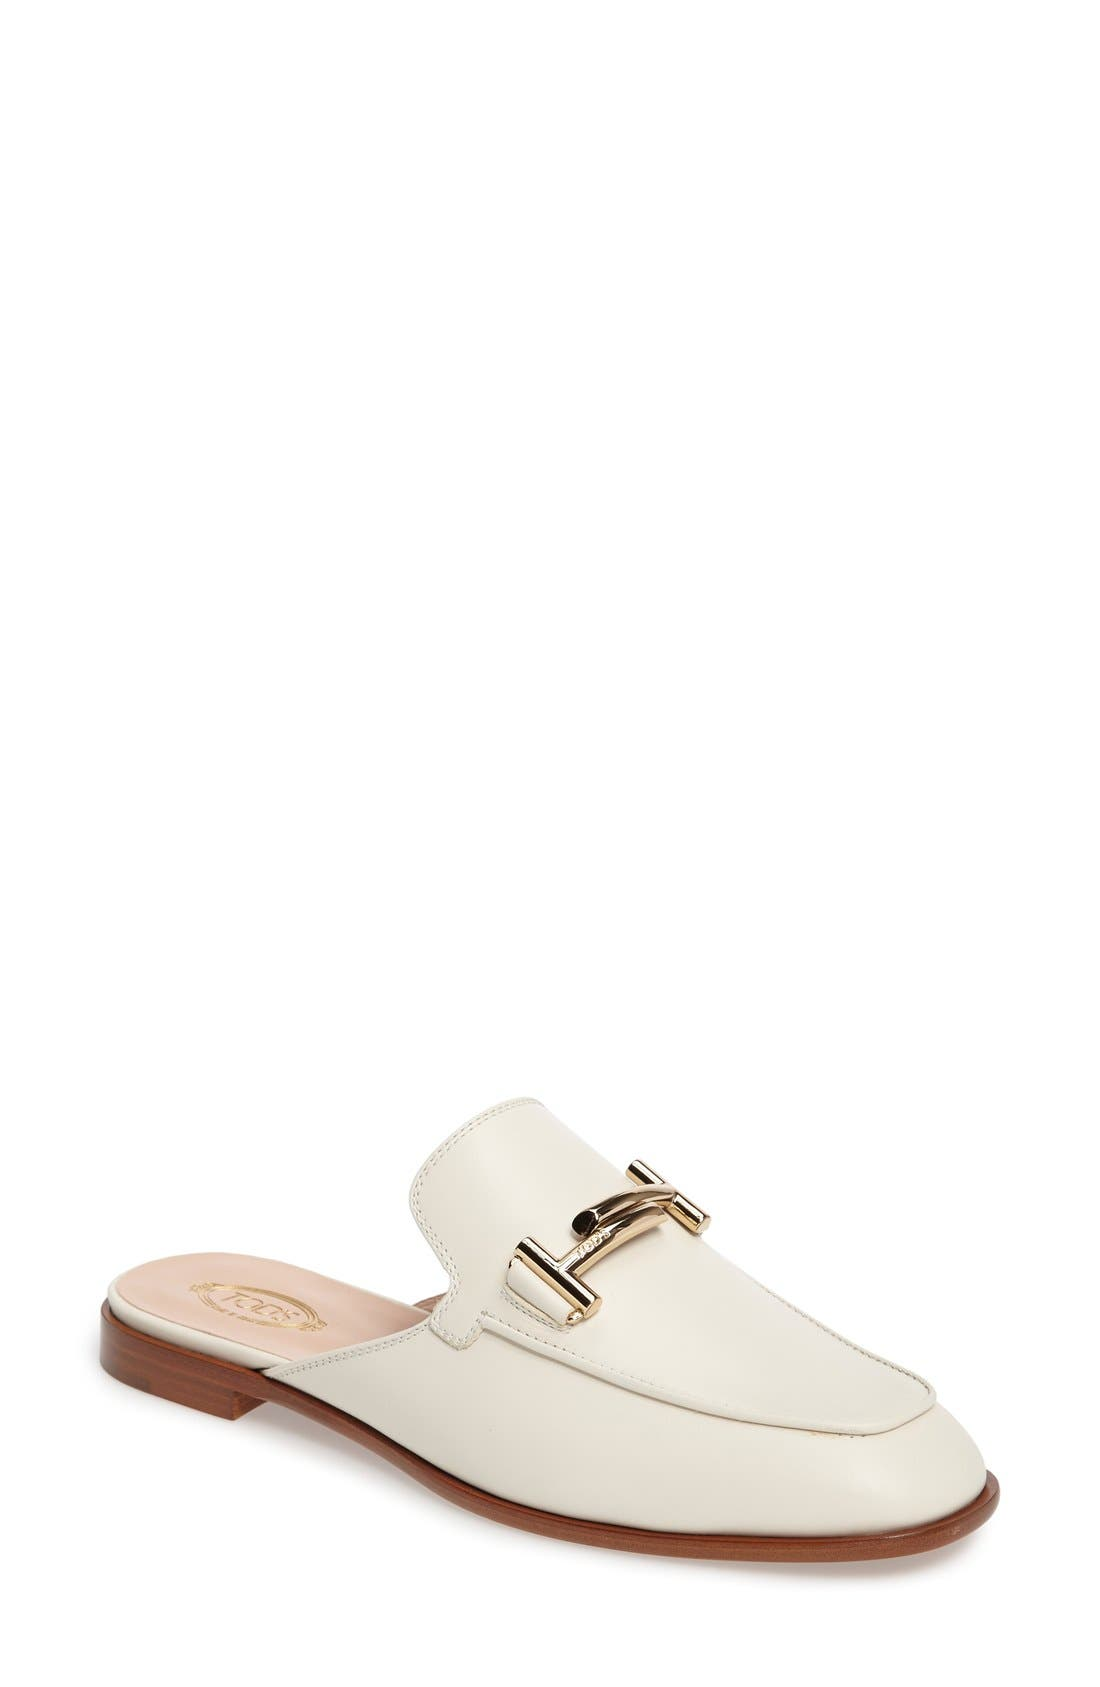 TODS Double T Mule